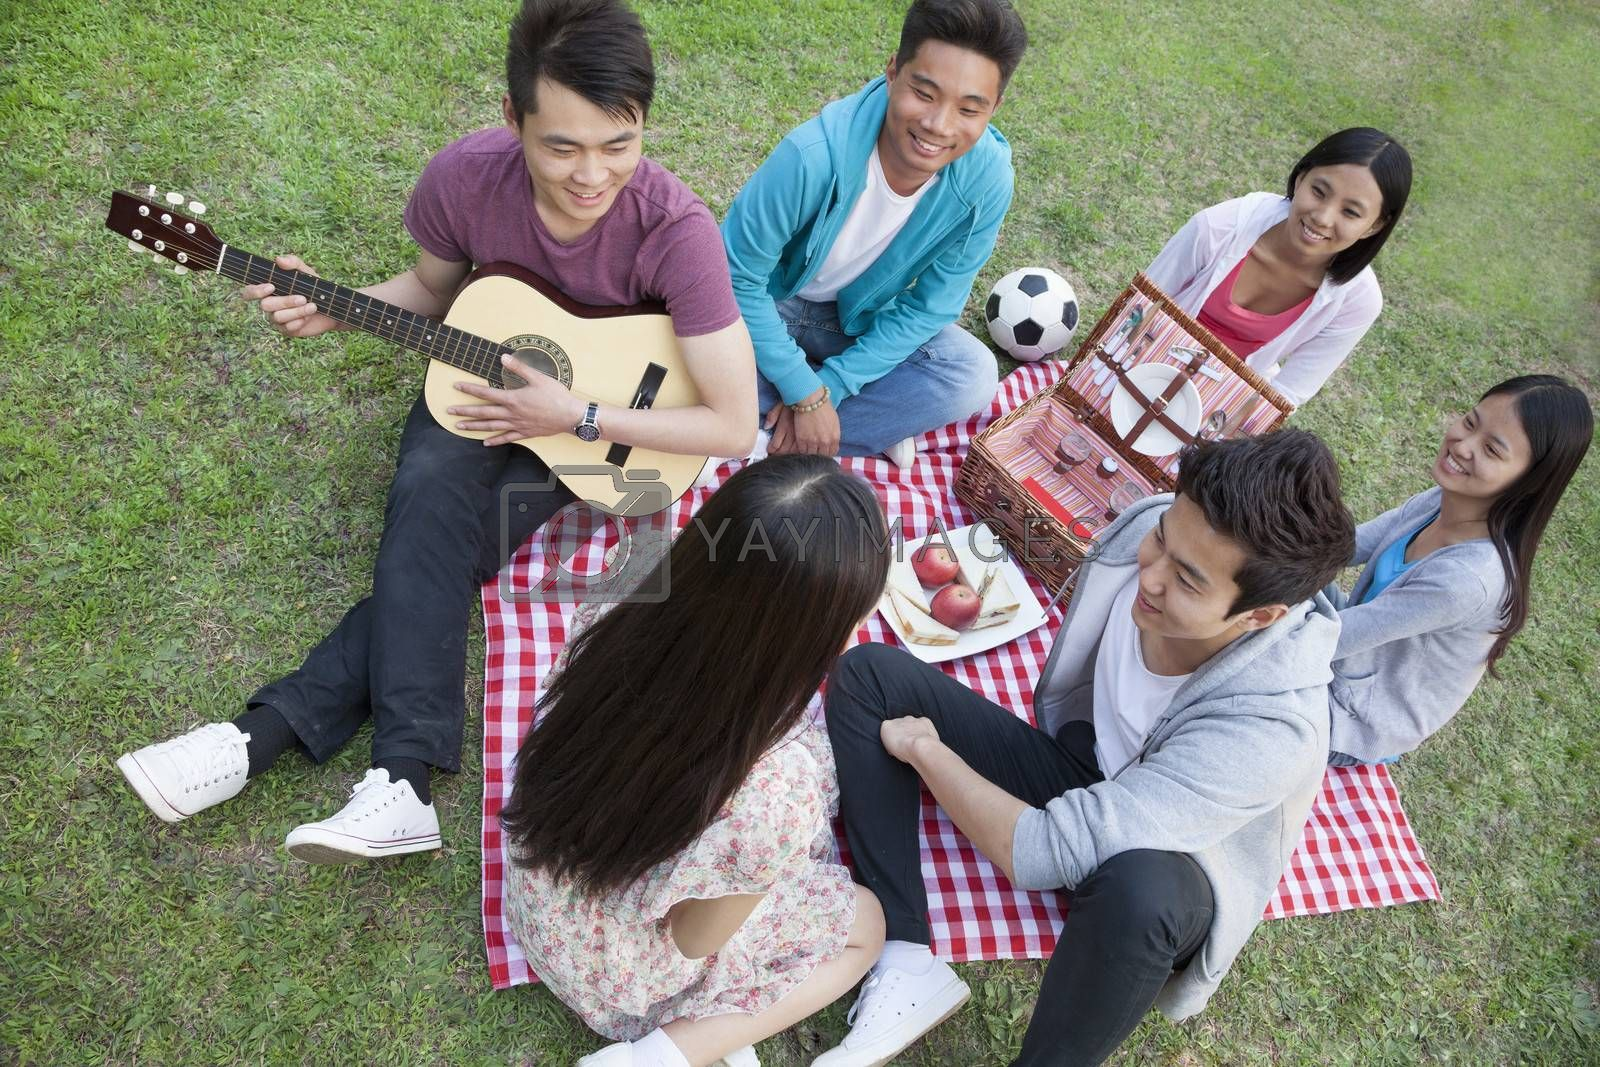 Six friends having a picnic and hanging out in the park, playing guitar and talking by XiXinXing